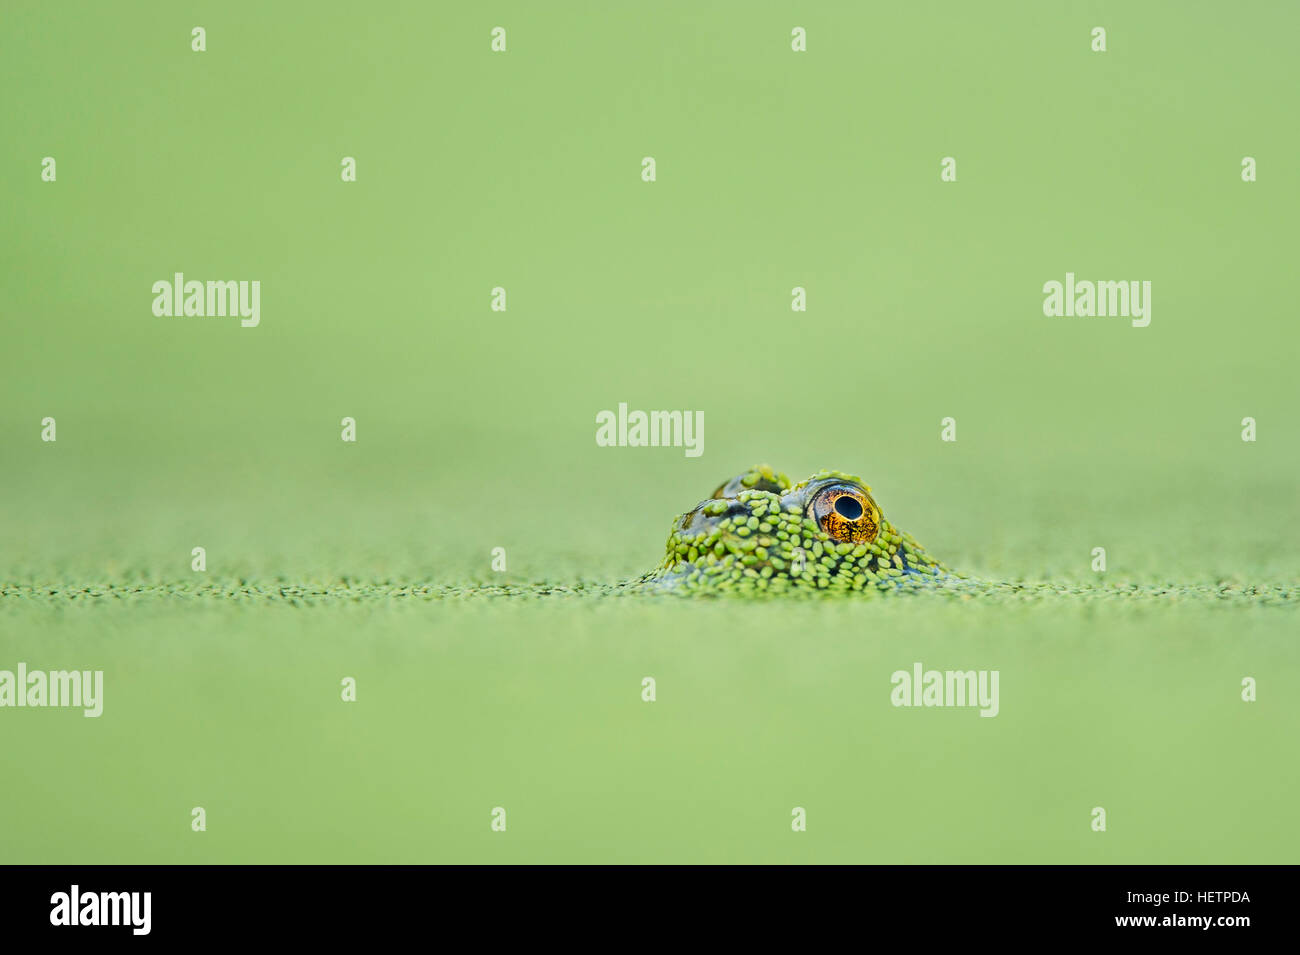 A tiny frog's one eye is visible just above the surface of the solid green duckweed covered water. - Stock Image